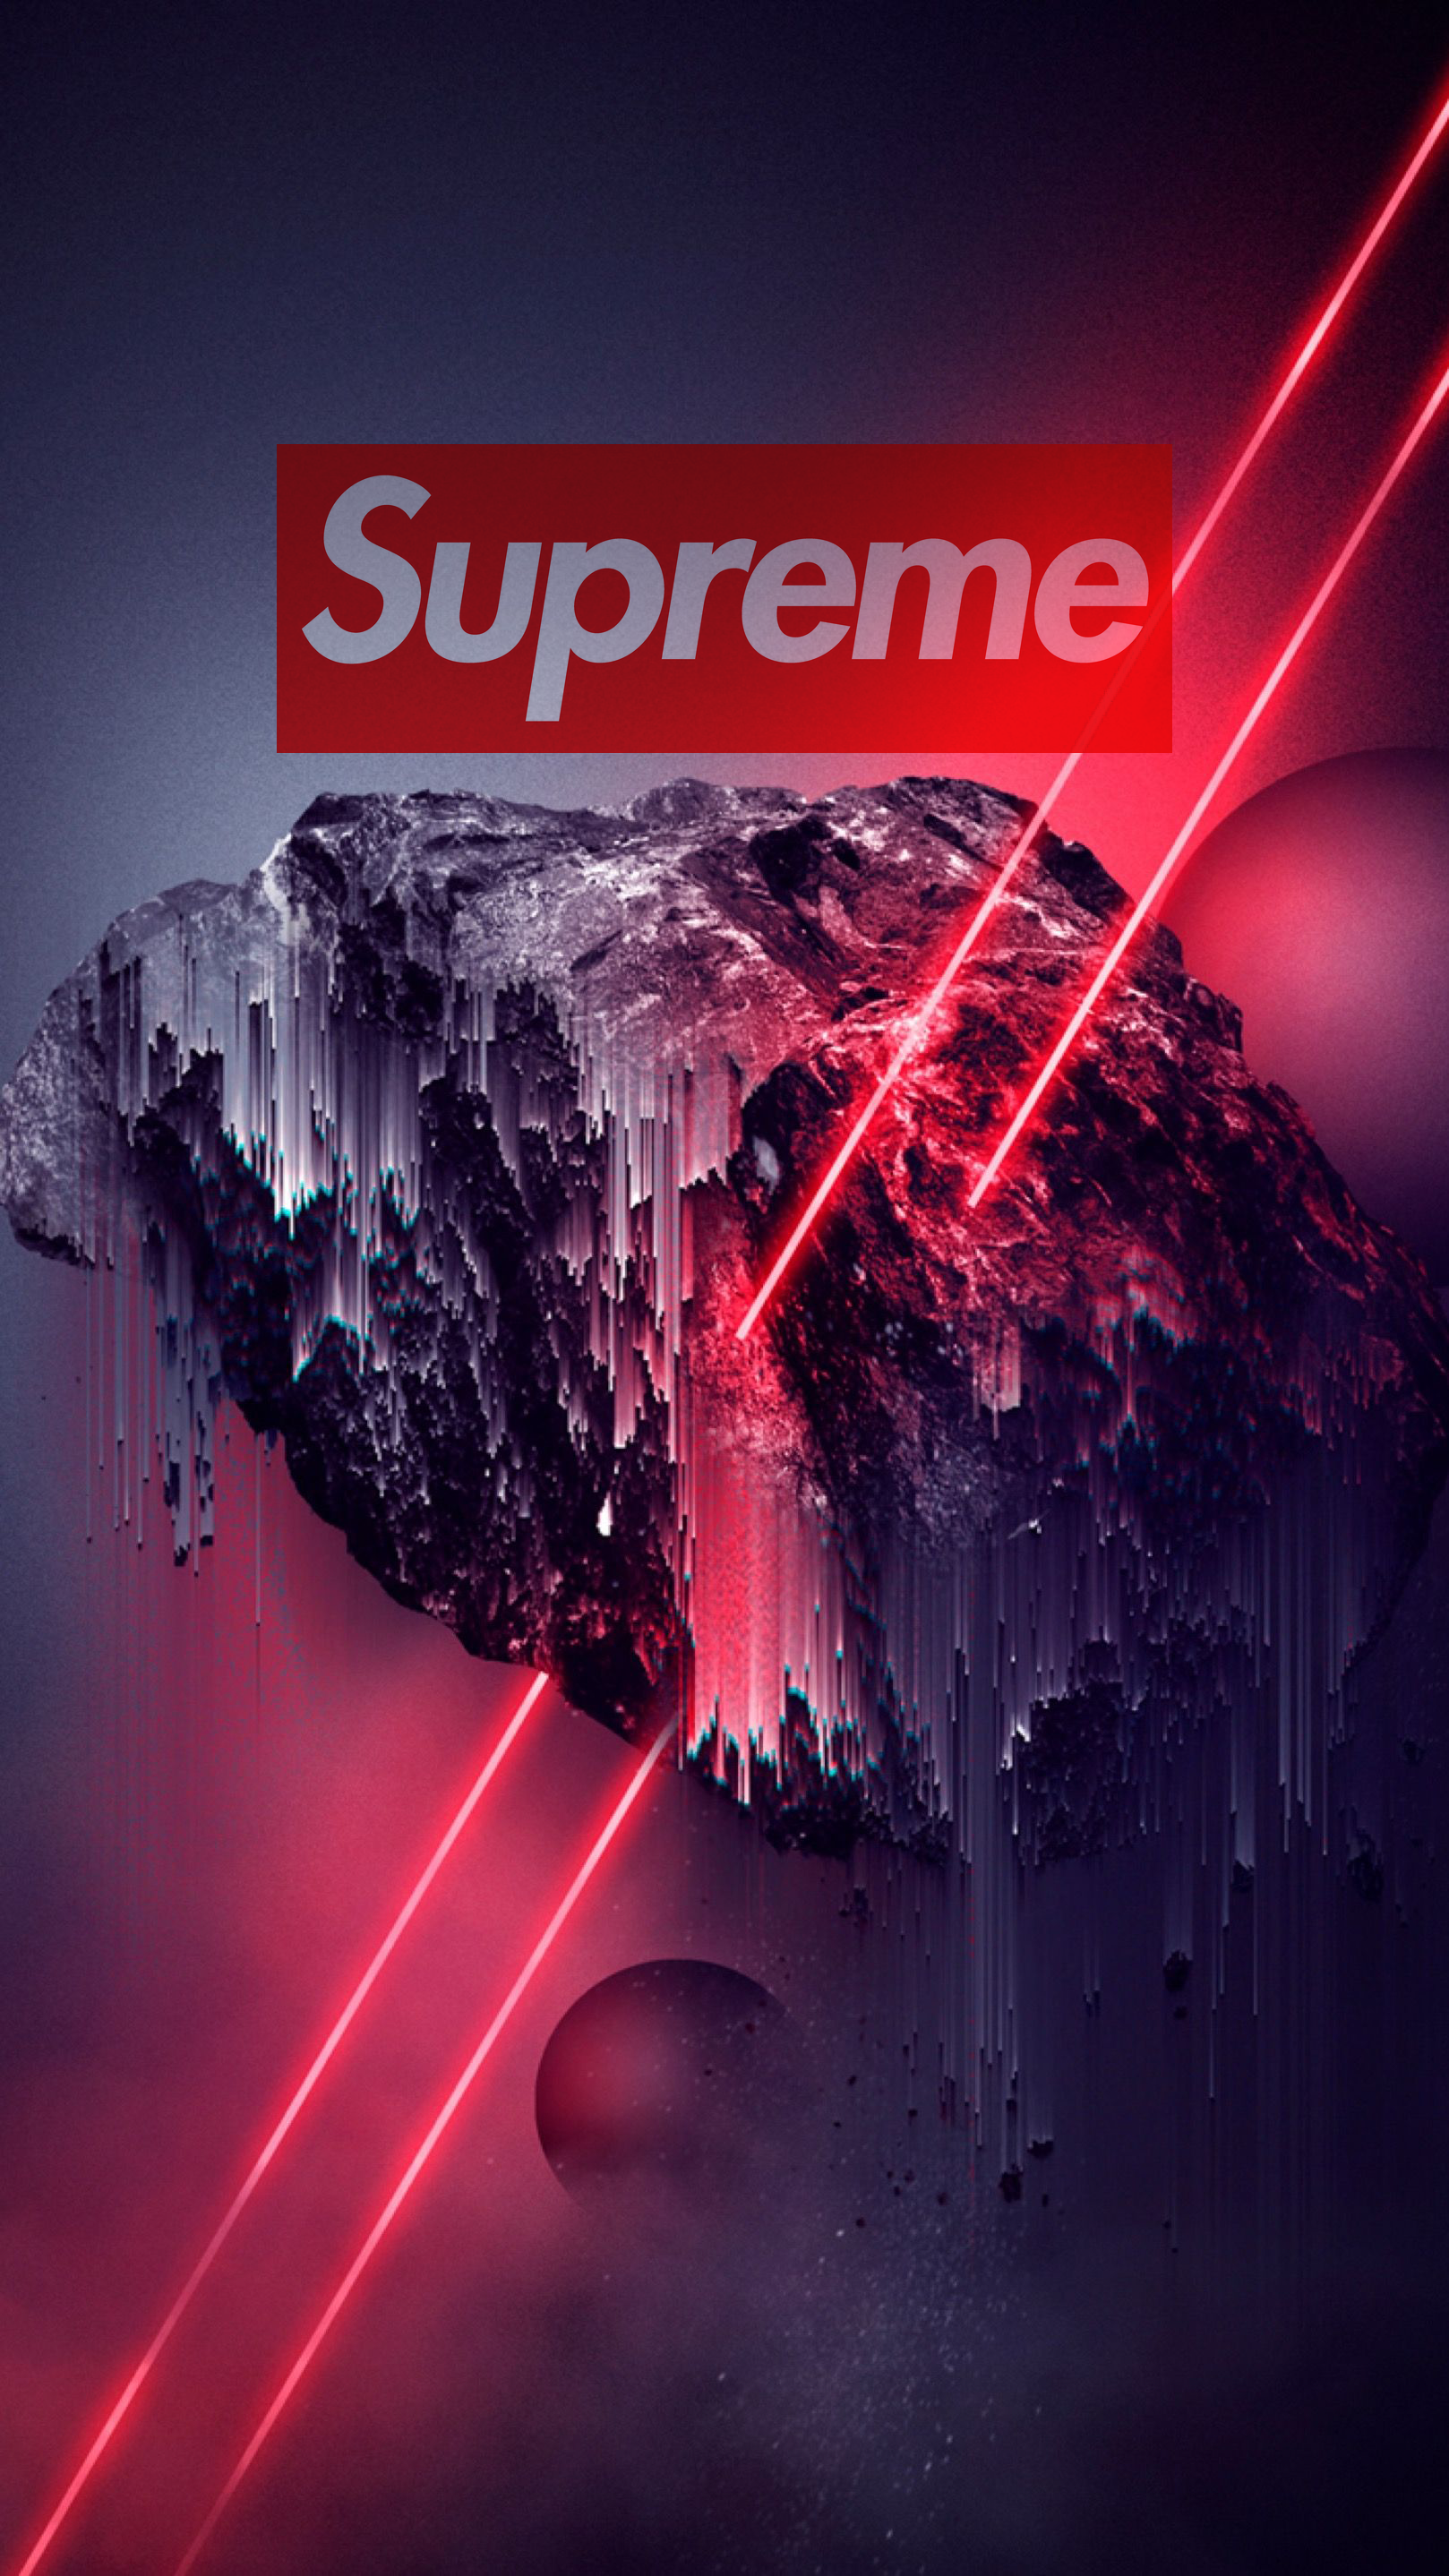 Supreme Cool wallpaper Iphone Smartphone hintergrund